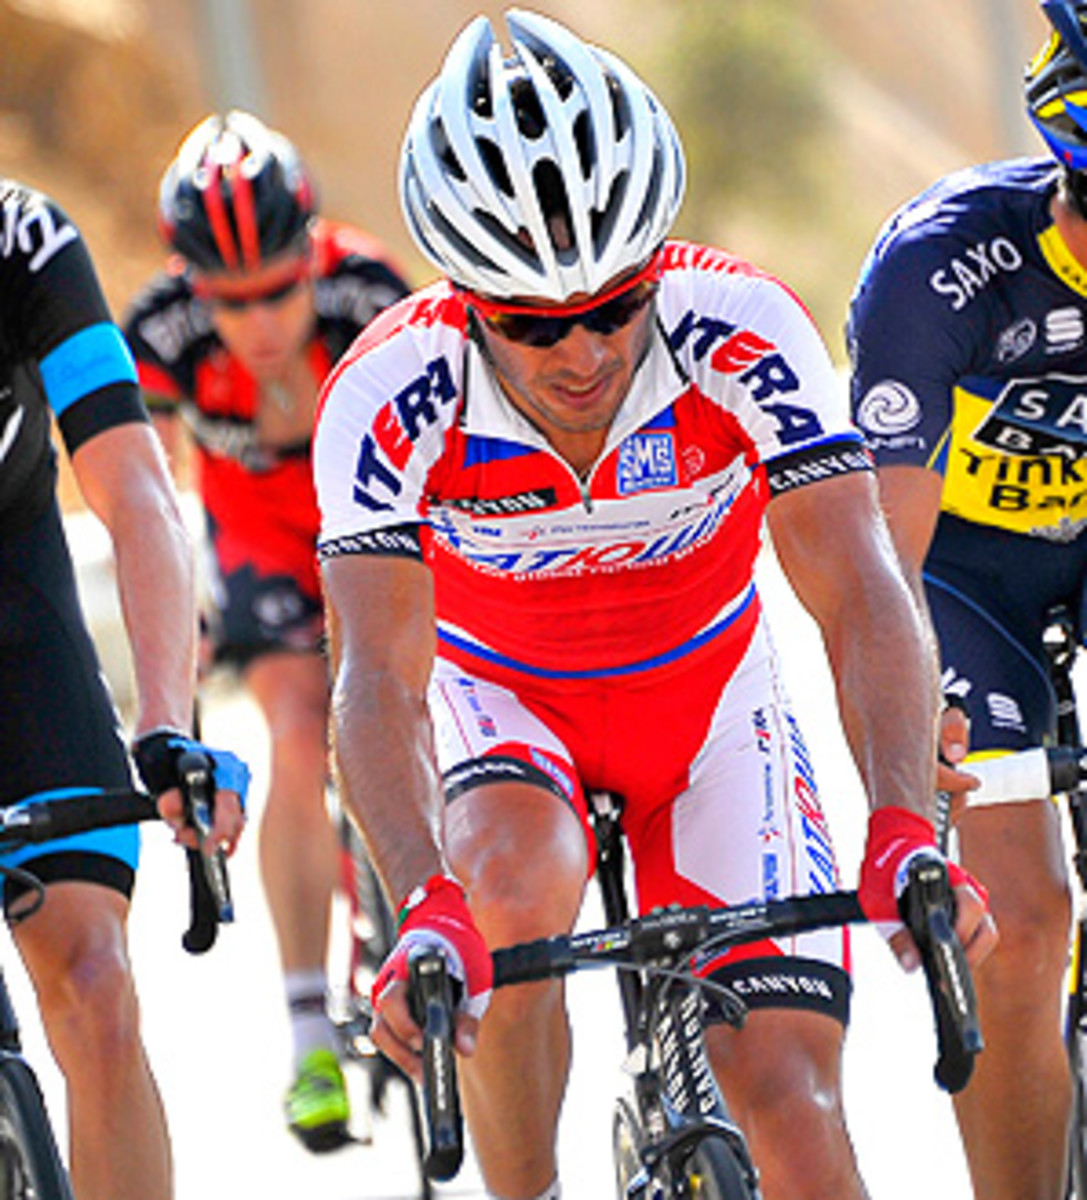 Team Sky's Christopher Froome finished second in the fourth stage of the Tour of Oman.